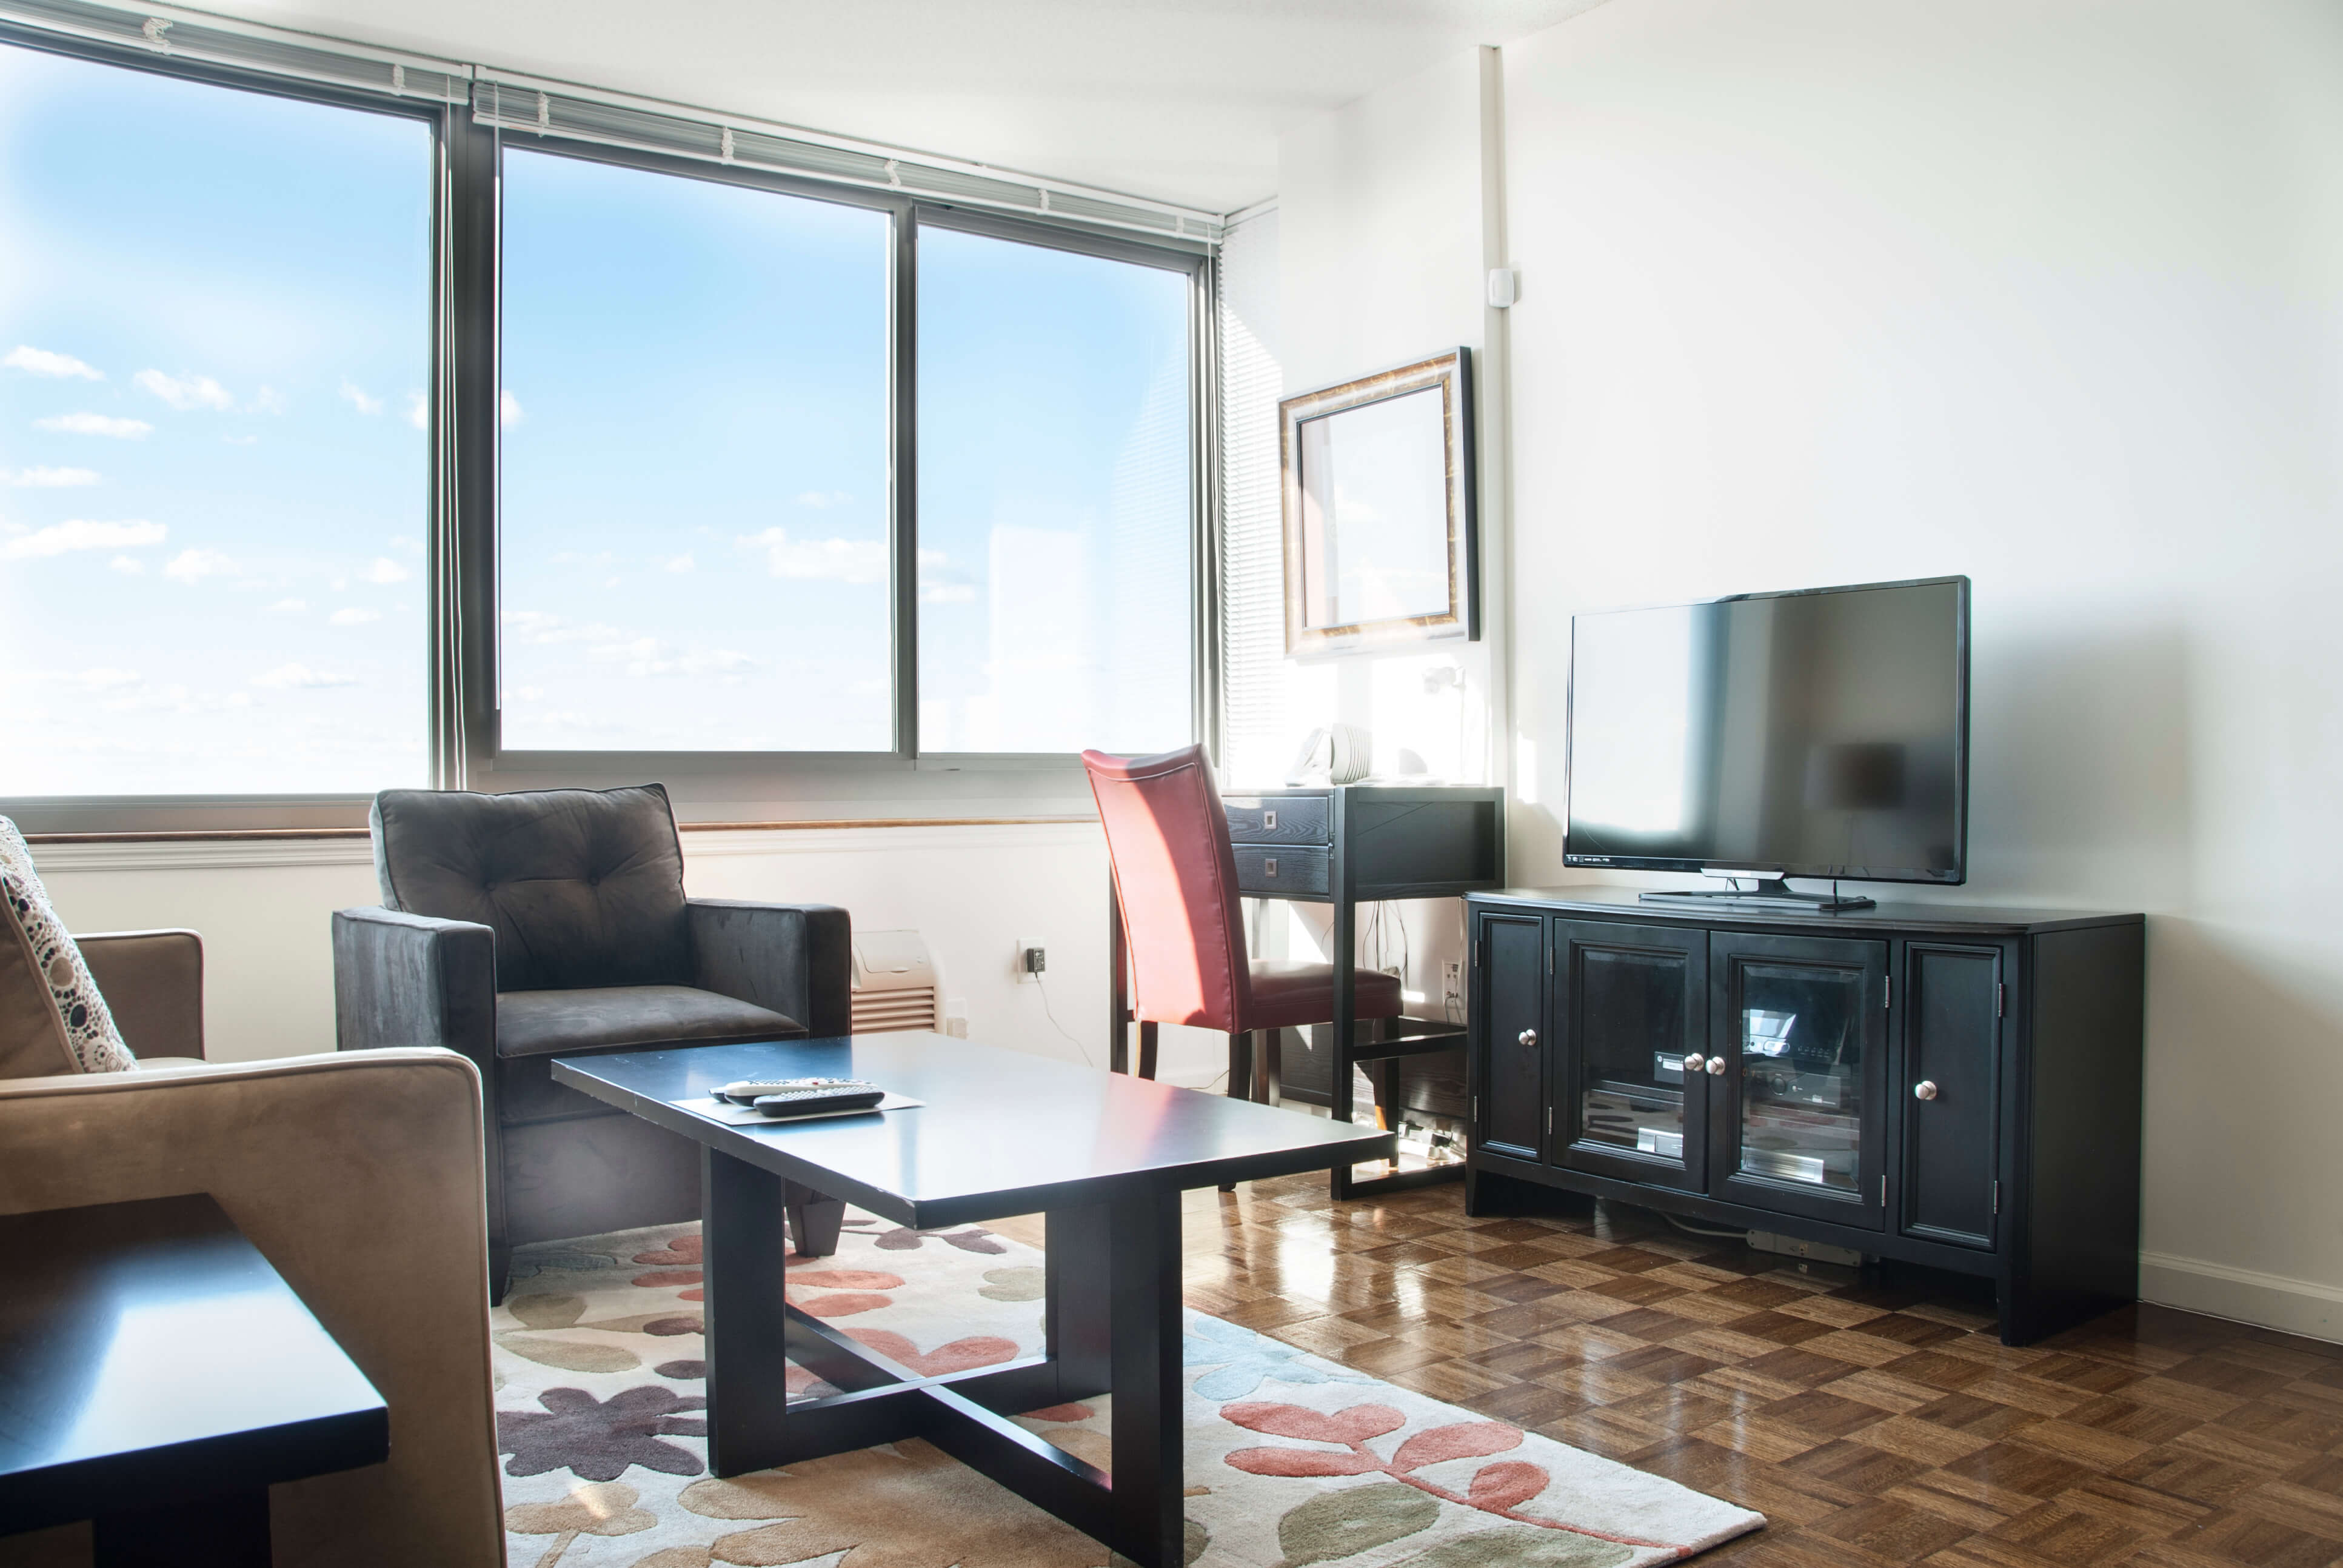 image 5 furnished 1 bedroom Apartment for rent in Jersey City, Hudson County